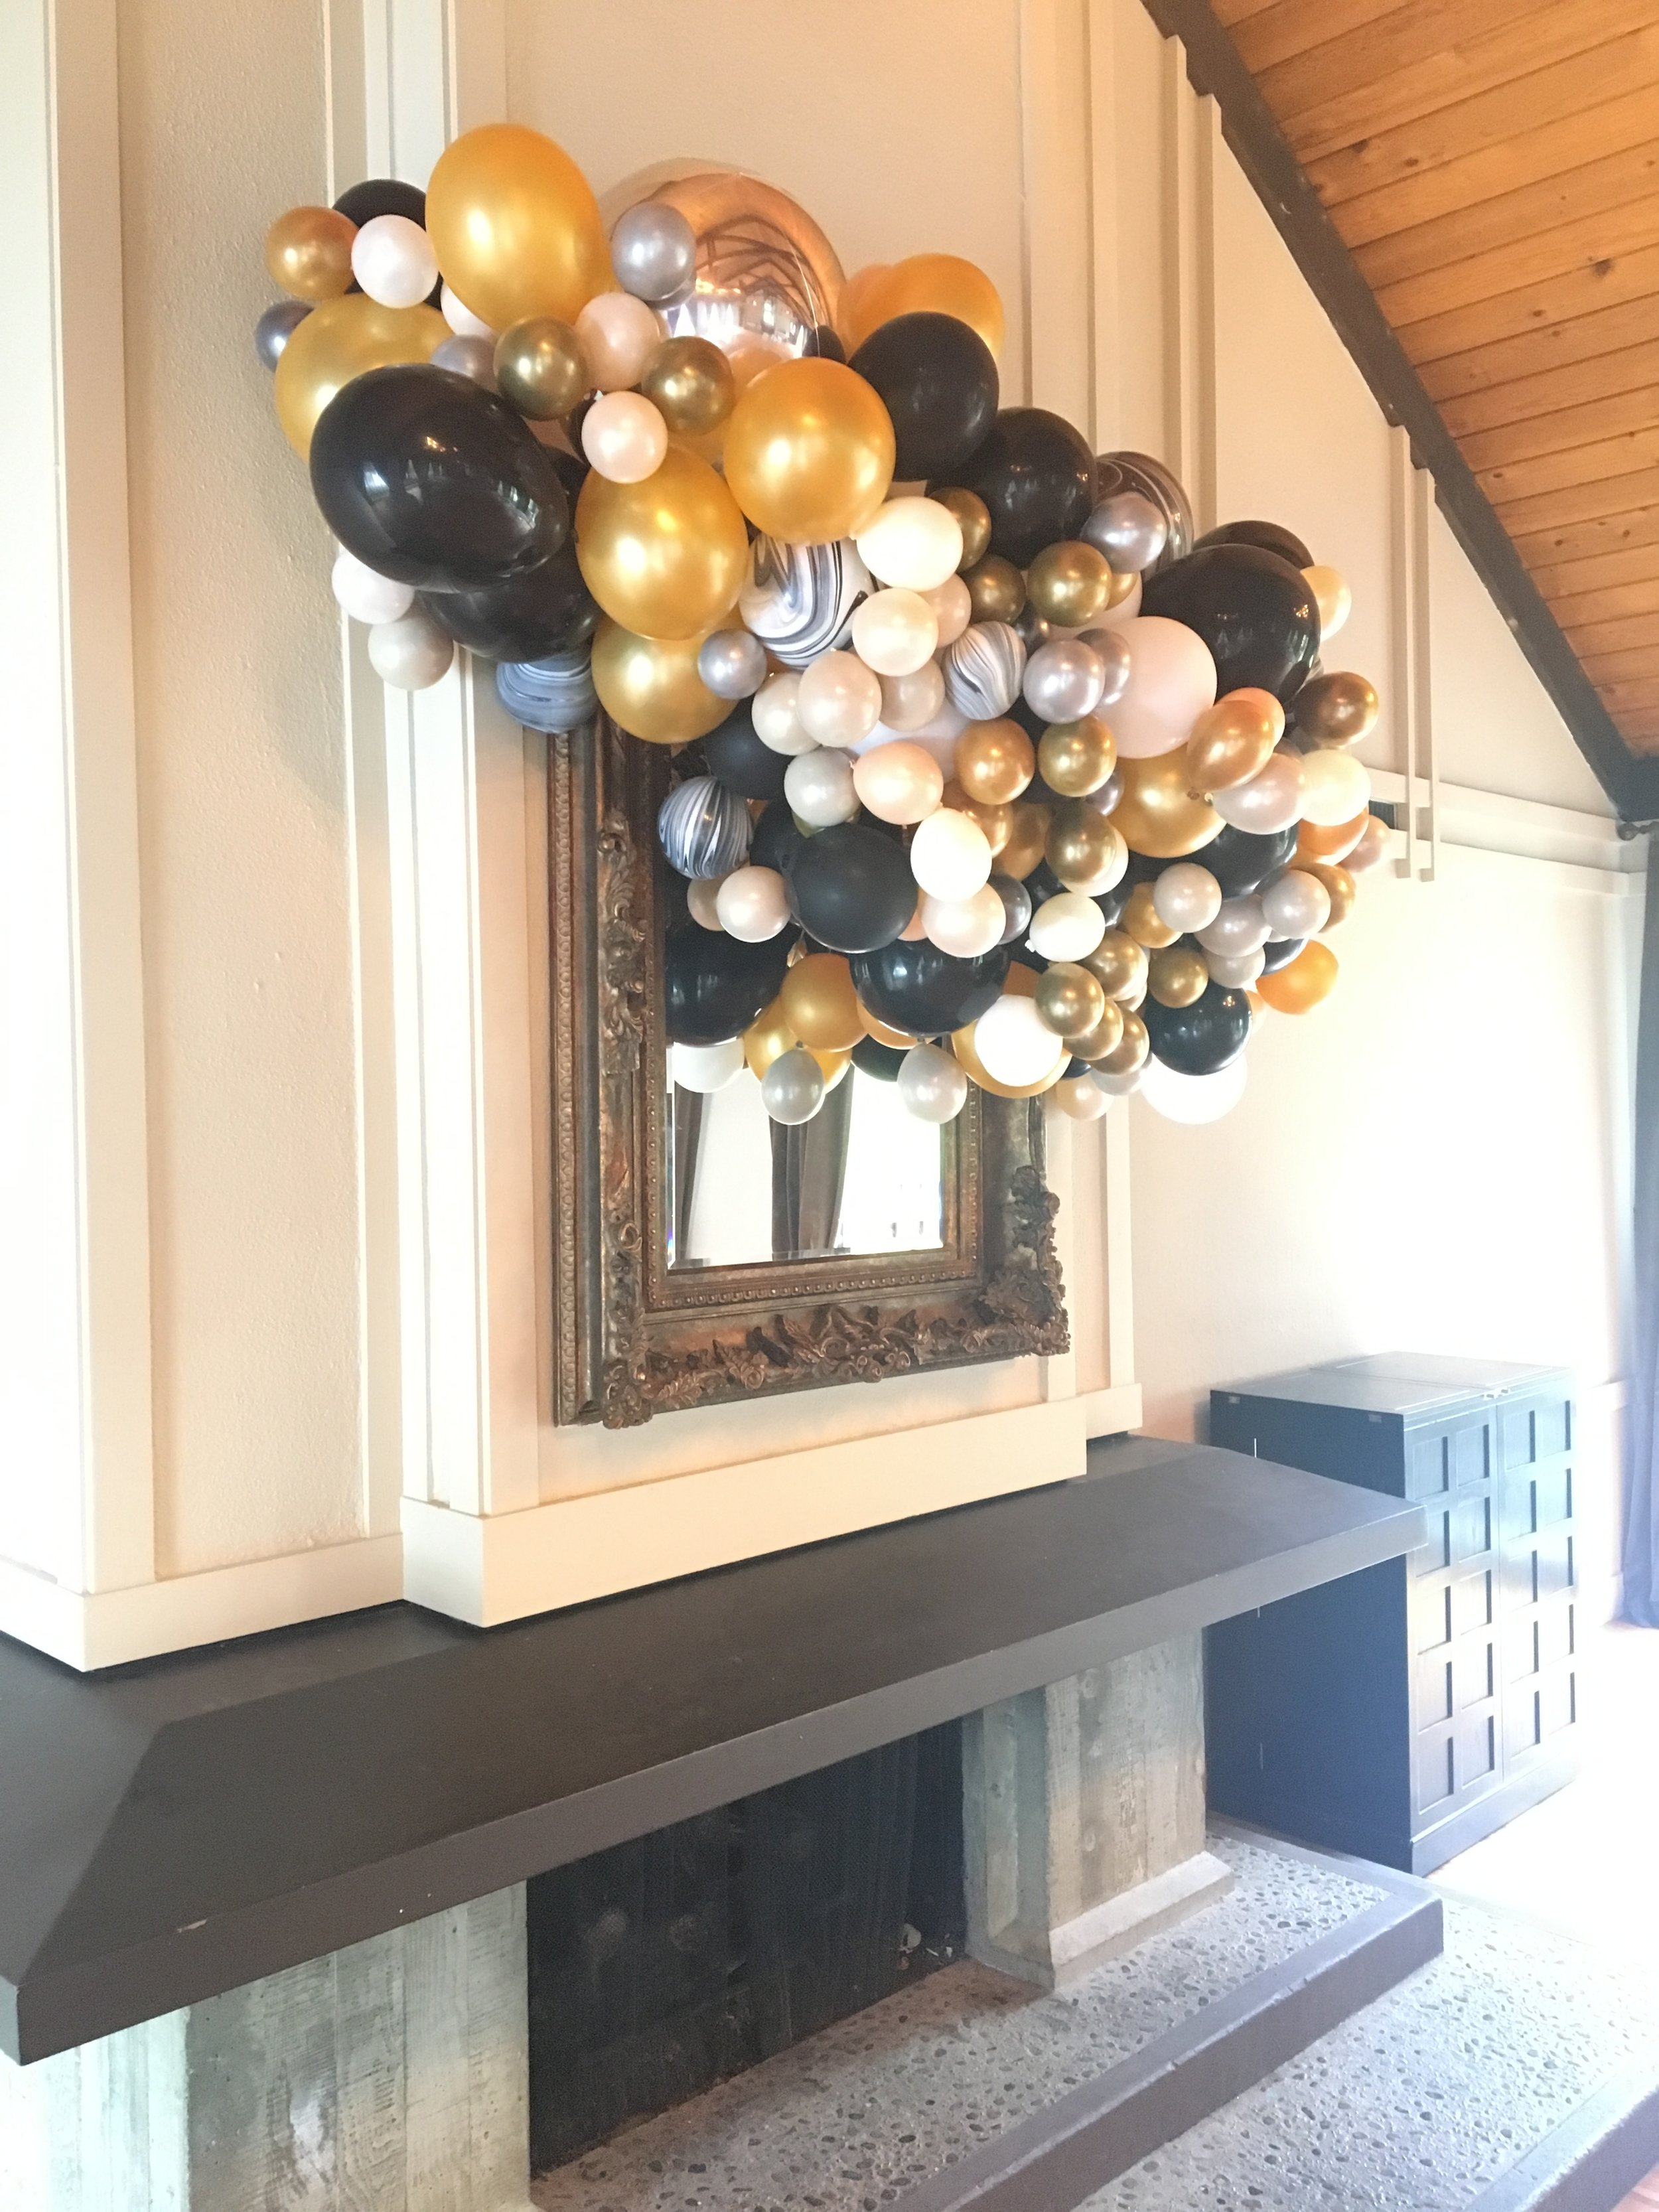 Balloon Bursts and Balloon Waterfalls- - are the best party idea for visual impact that is unforgettable! Attendees of this event still talk about this balloon installation months after the ball!